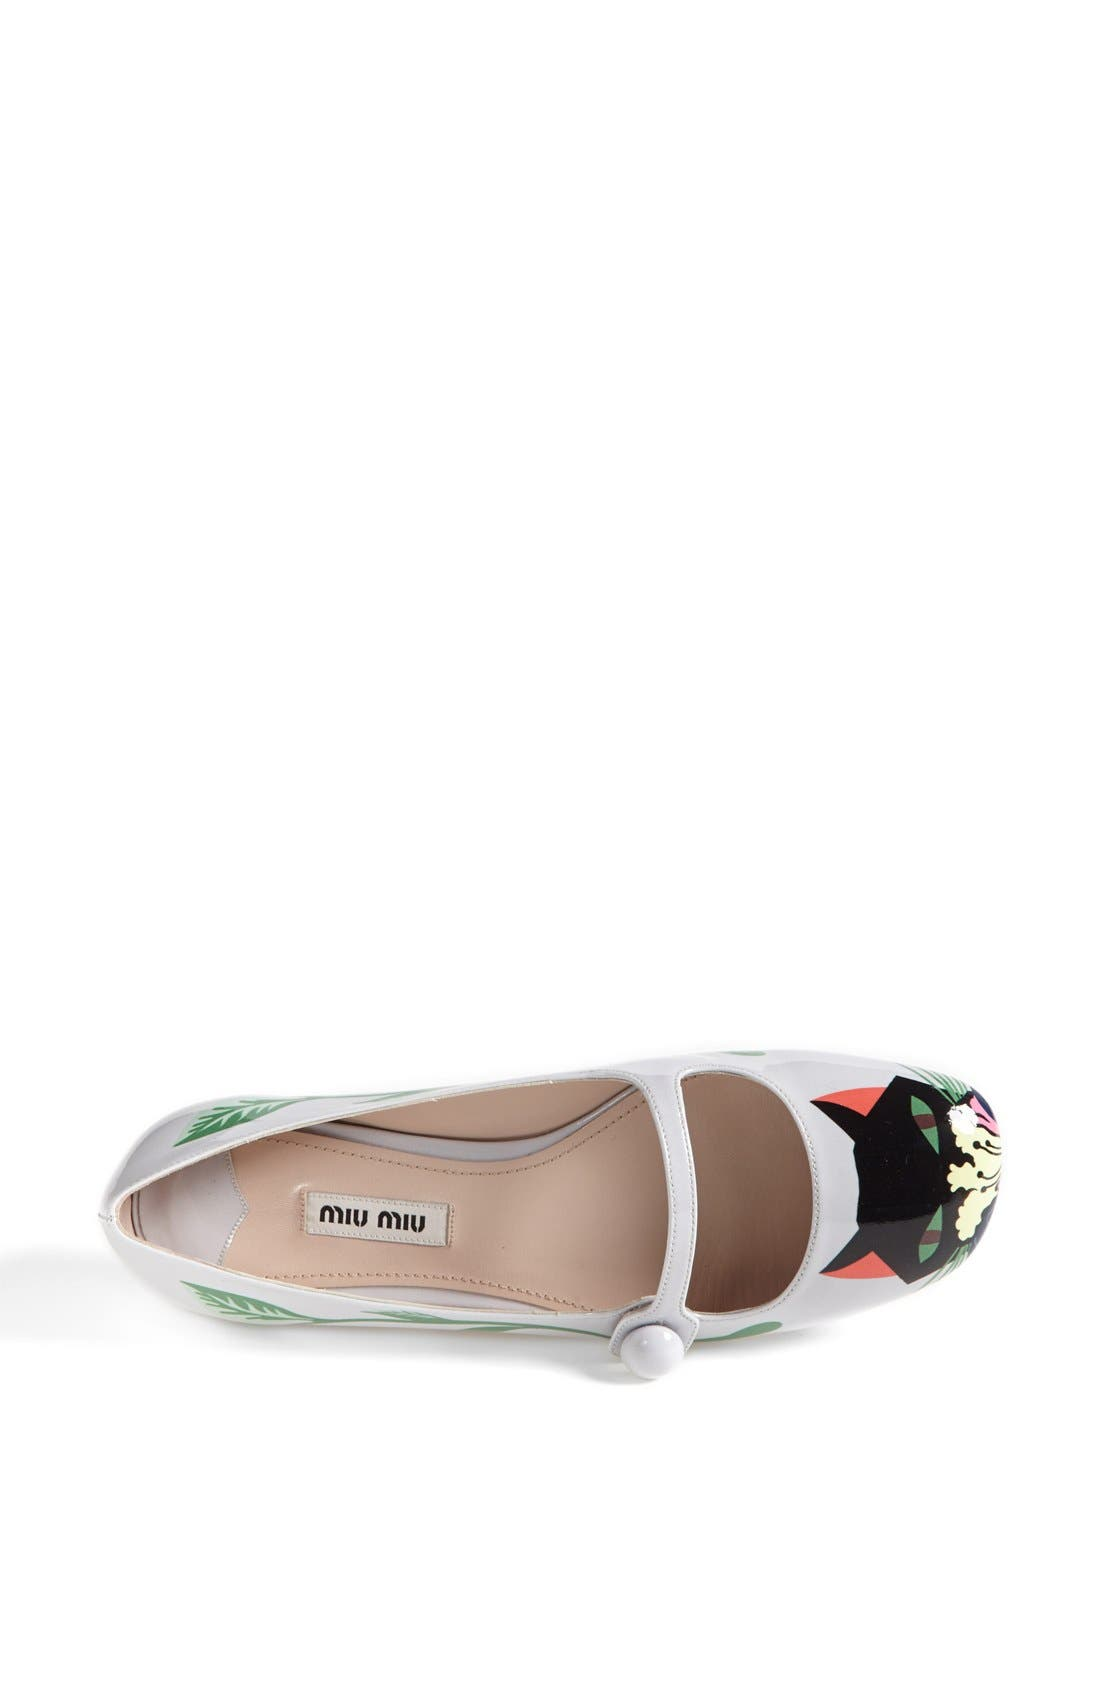 Alternate Image 3  - Miu Miu 'Cat' Mary Jane Flat